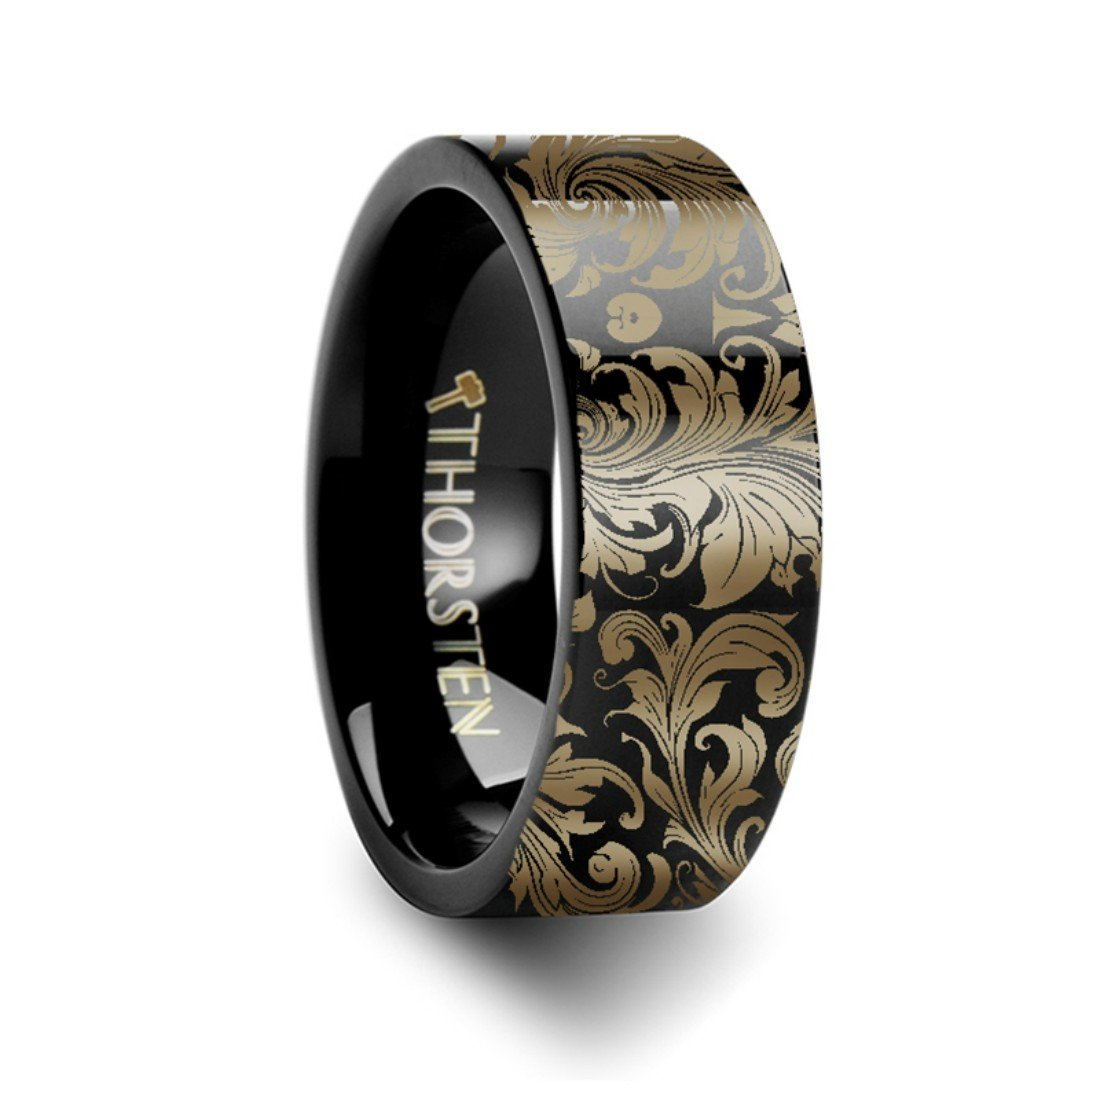 Thorsten Filigree Floral Leaf Design Print Pattern Ring Flat Black Tungsten Ring 10mm Wide Wedding Band from Roy Rose Jewelry